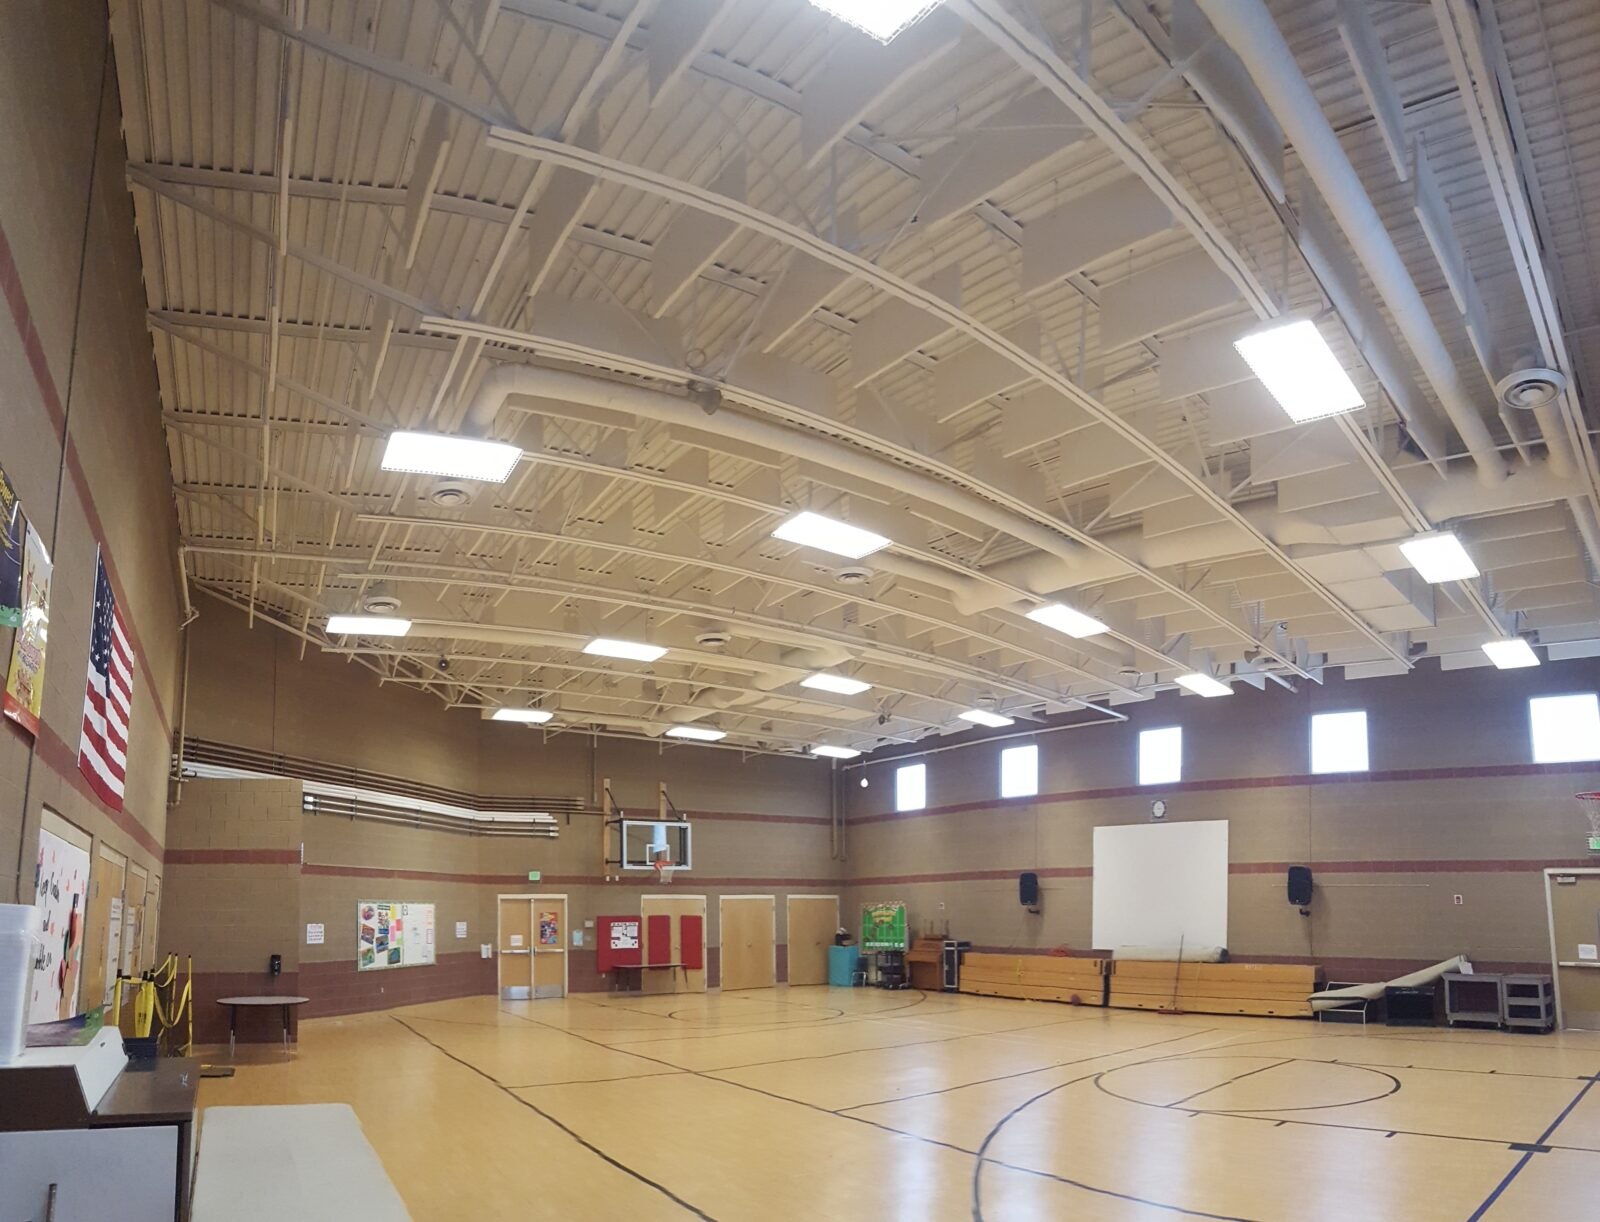 soundproofing a gymnasium with acoustic baffles